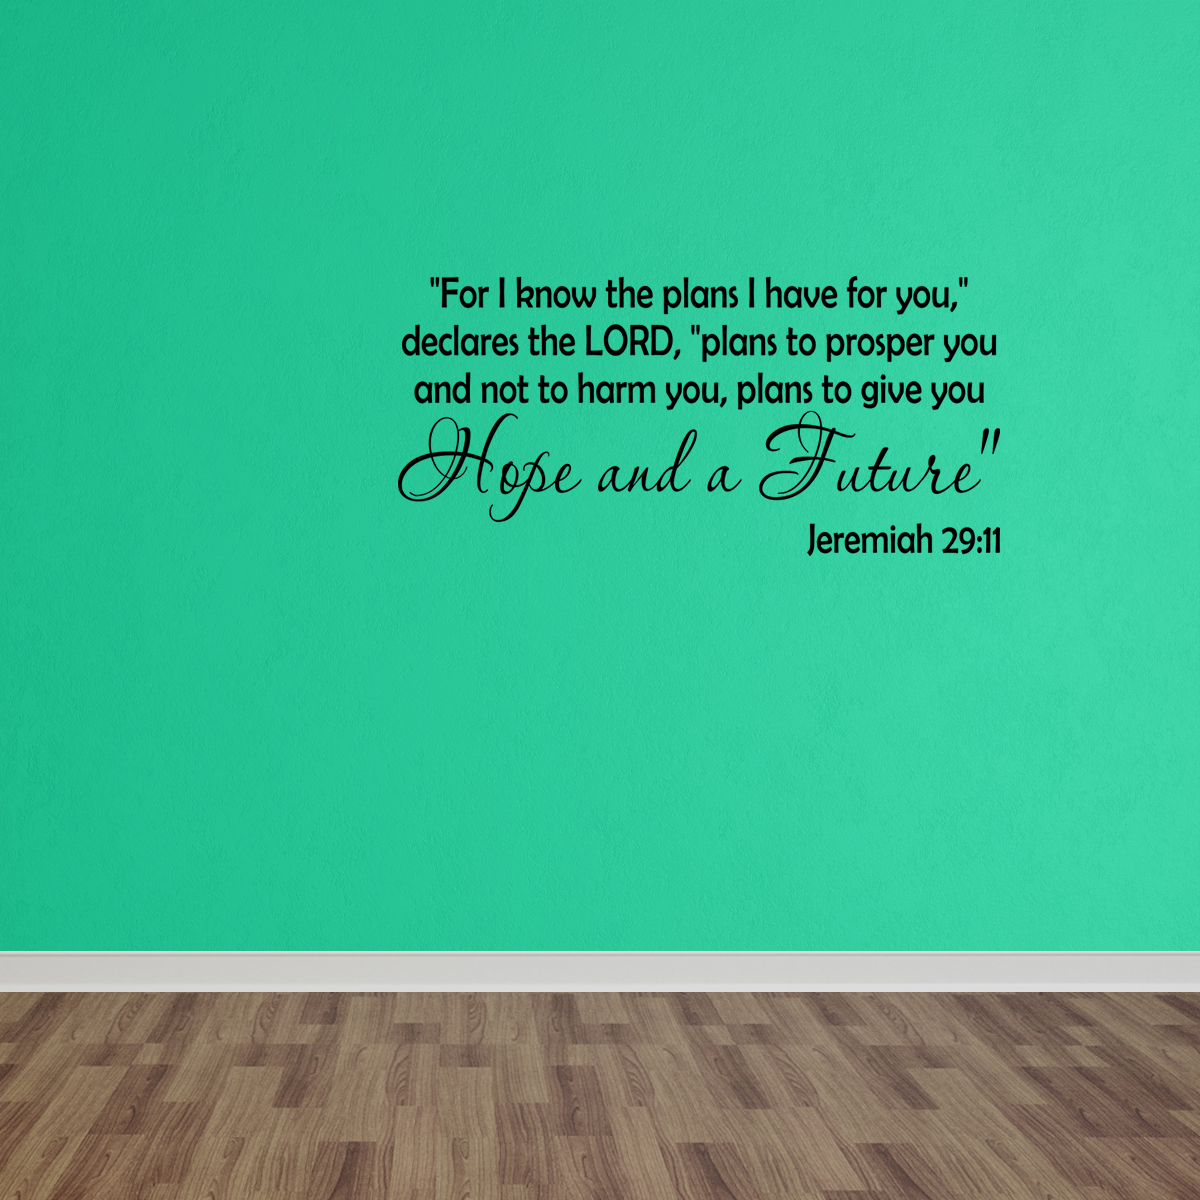 Wall Decal Quote Jeremiah 29:11 The Plans For You Declares The Lord W16